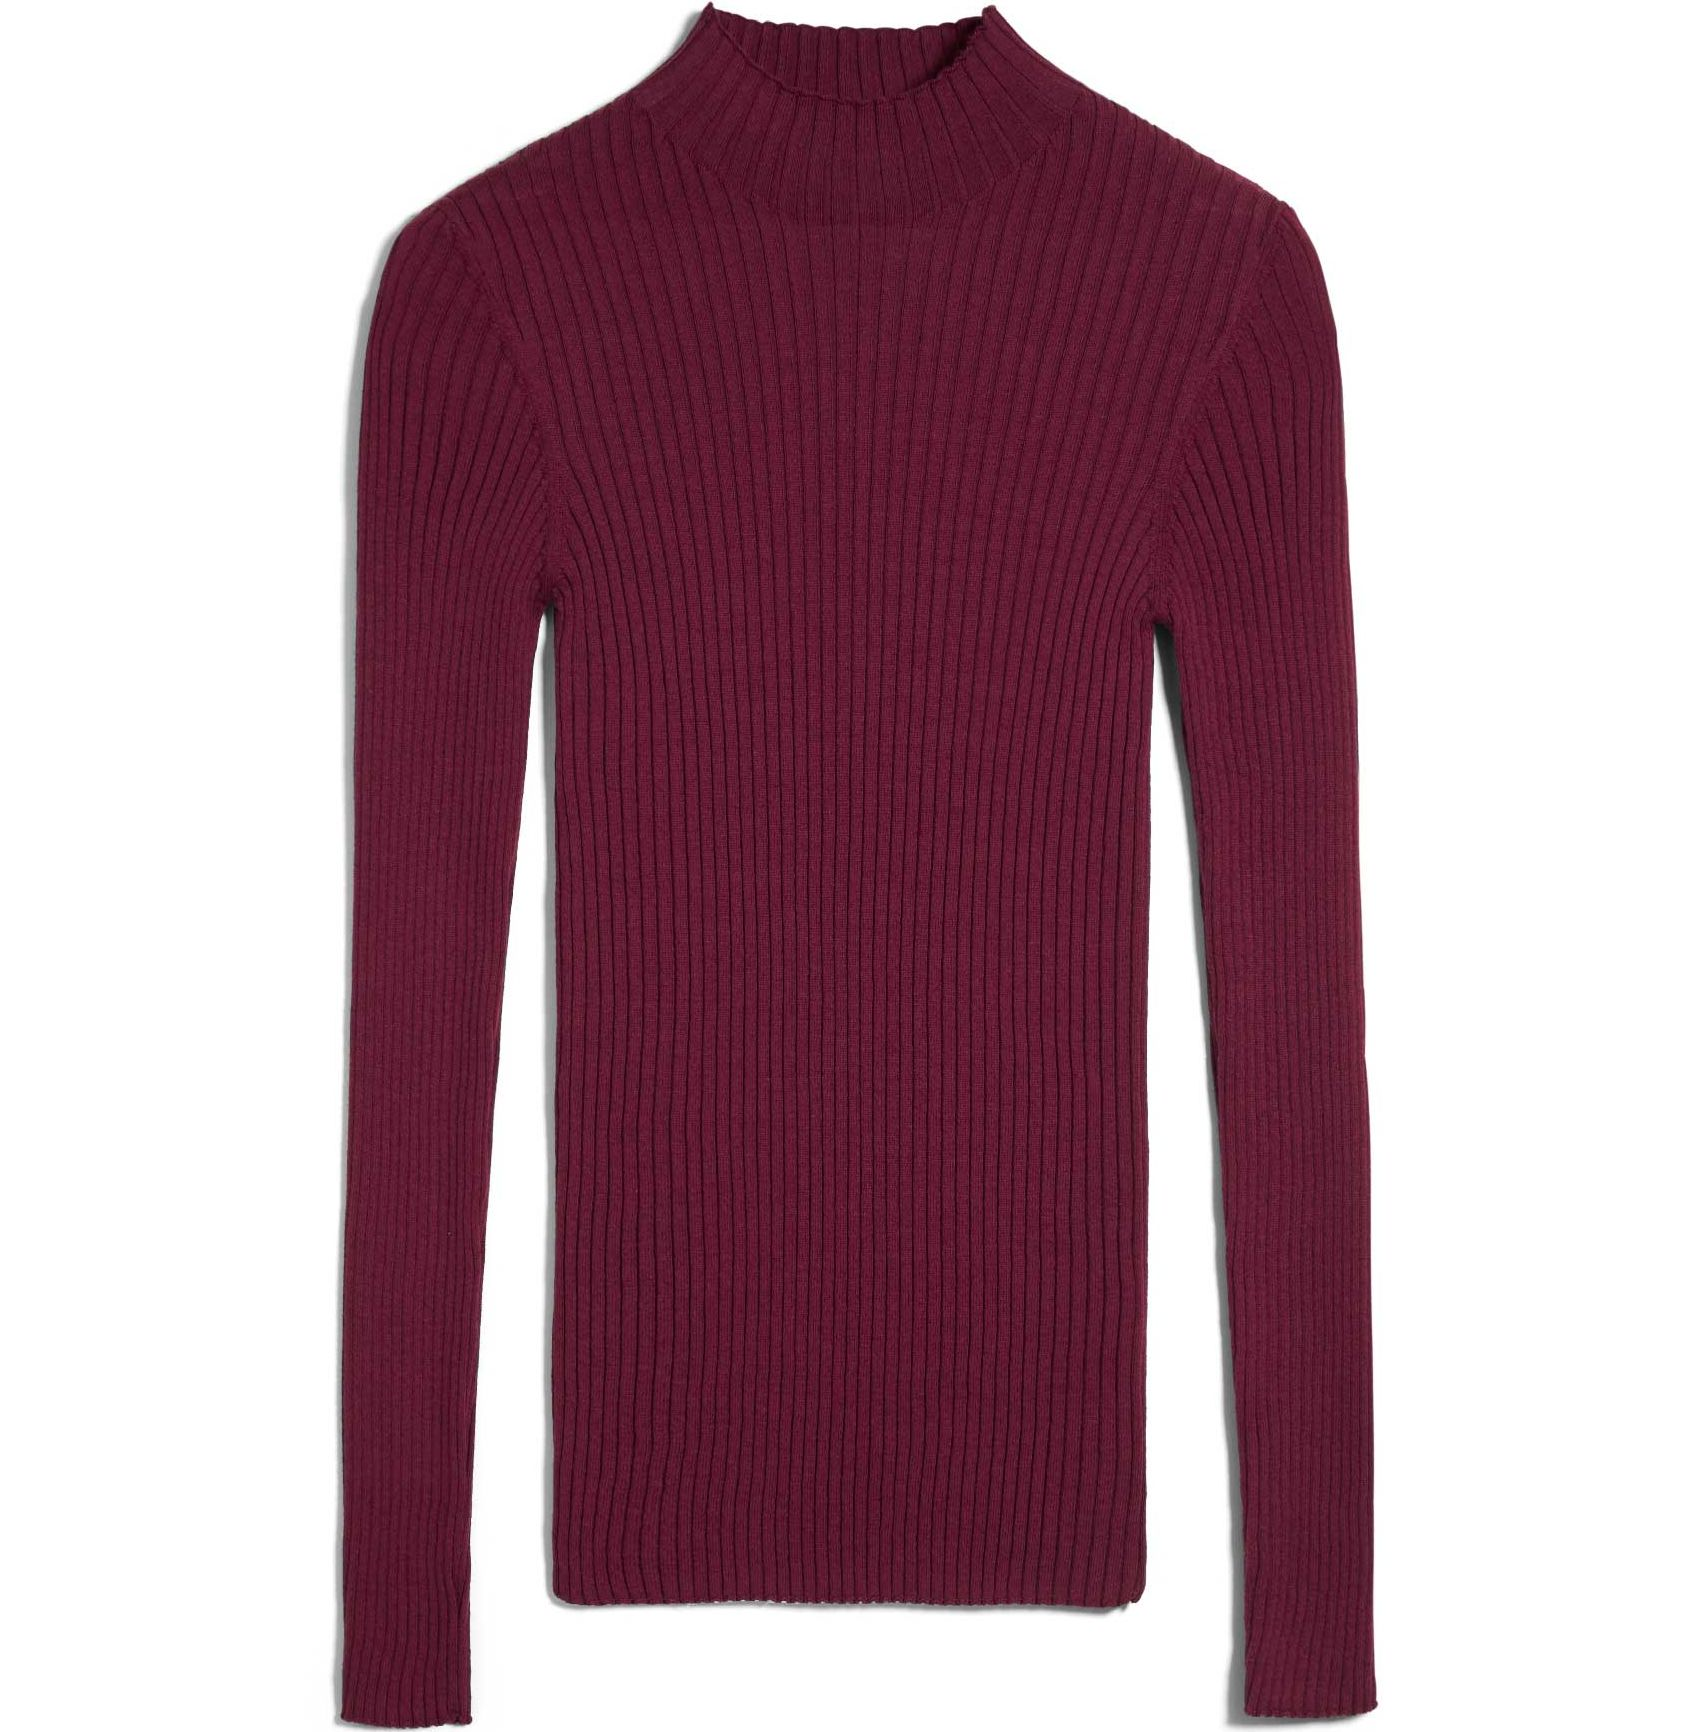 Damen-Pullover ALAANI ruby red